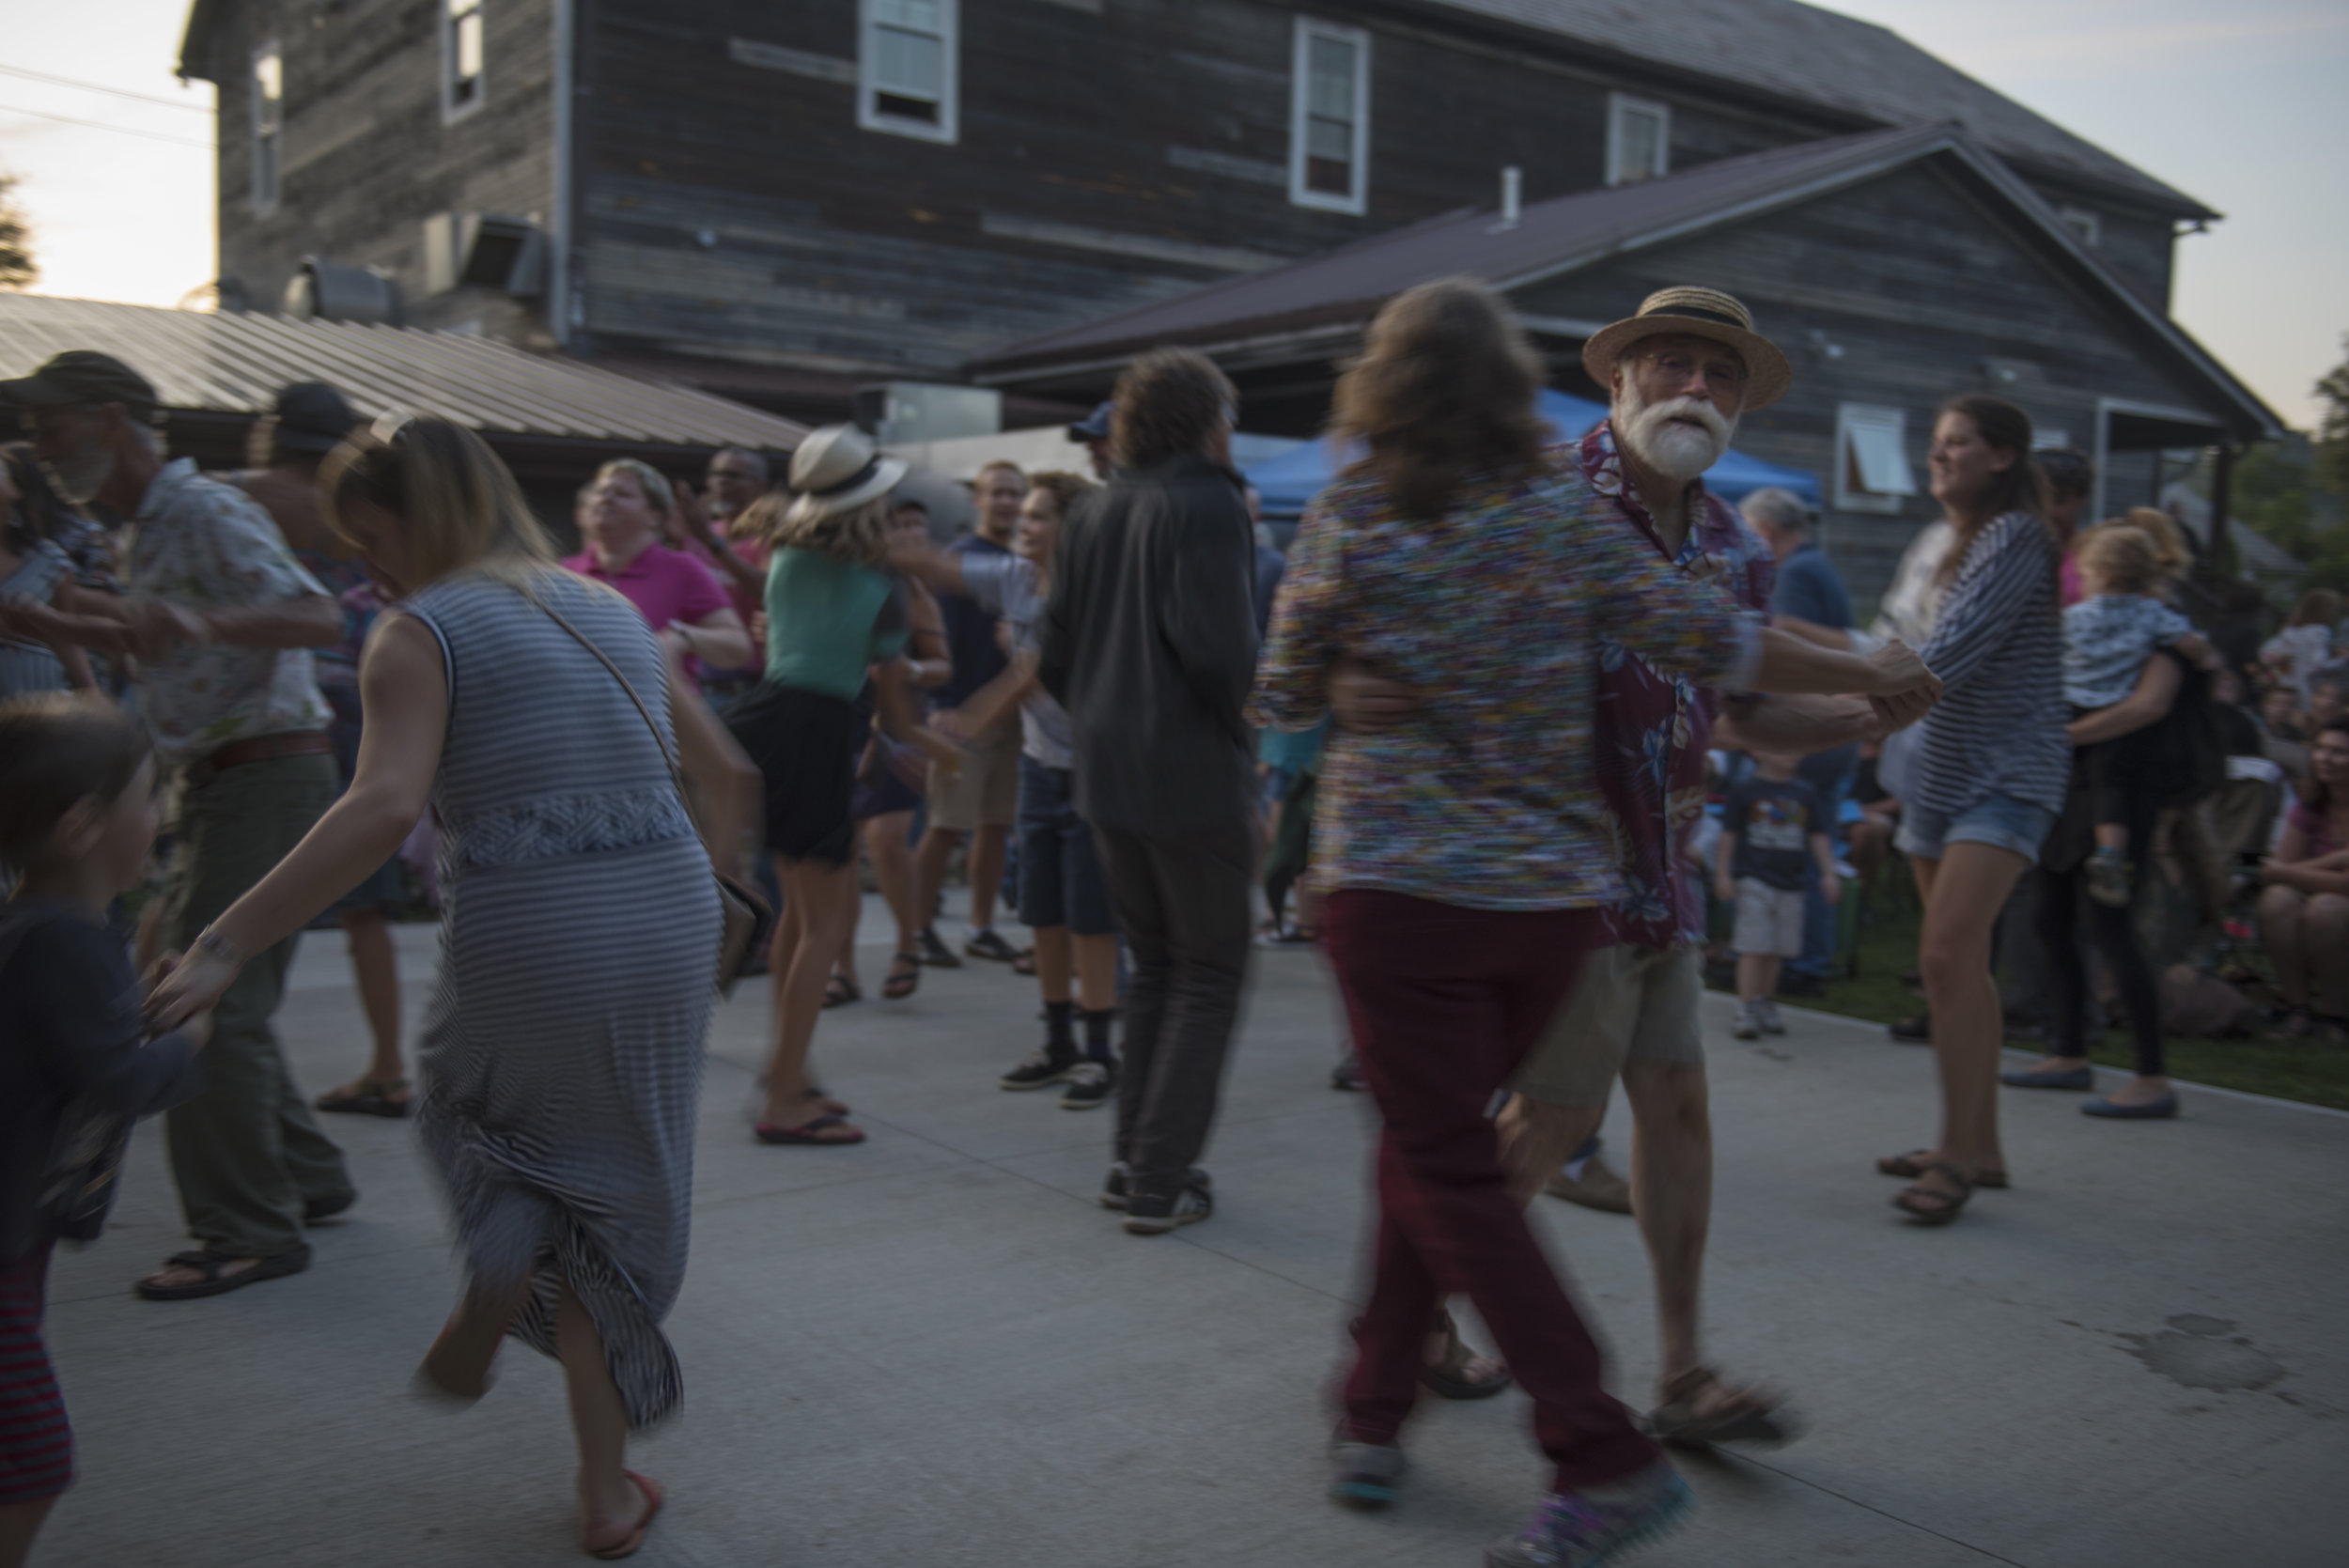 McGee and his wife Robin dance together to the music of The Wild Honeybees at Eclipse Country Store in The Plains, Ohio on Sept. 3, 2017. McGee loves to dance and occasionally attends contra dance classes at Arts West with other city councilmembers.